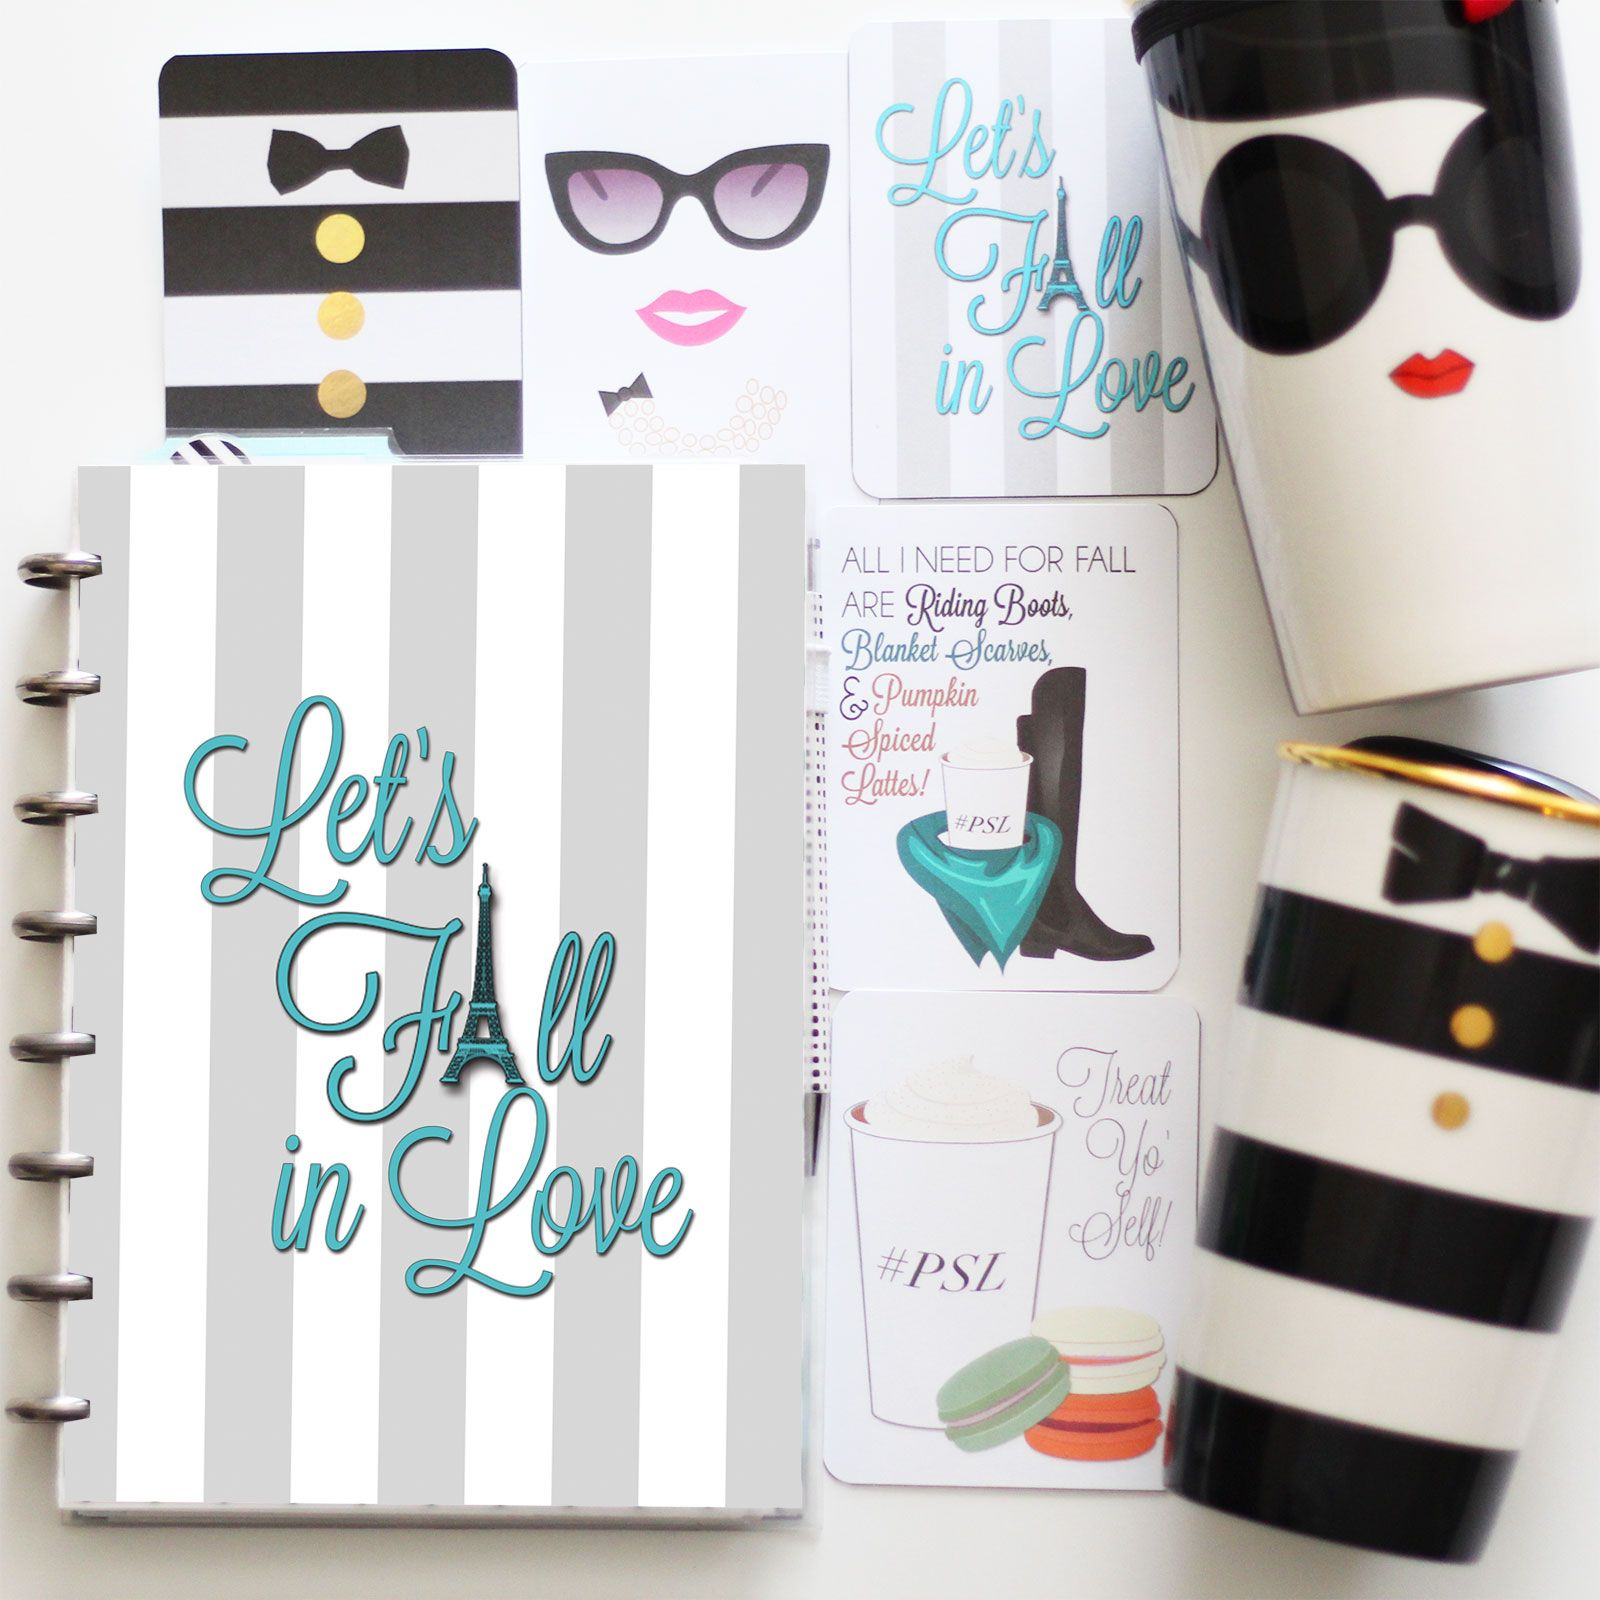 Fall is hereand for many of us planner girls, it also happens to be our favorite time of year! September brings that fresh start, back to school feel, embellished with sweet but spicy candle scents from Bath & Body Works, Pumpkin Spices Lattes from Starbucks and of course beautiful autumn accessories like riding boots and …